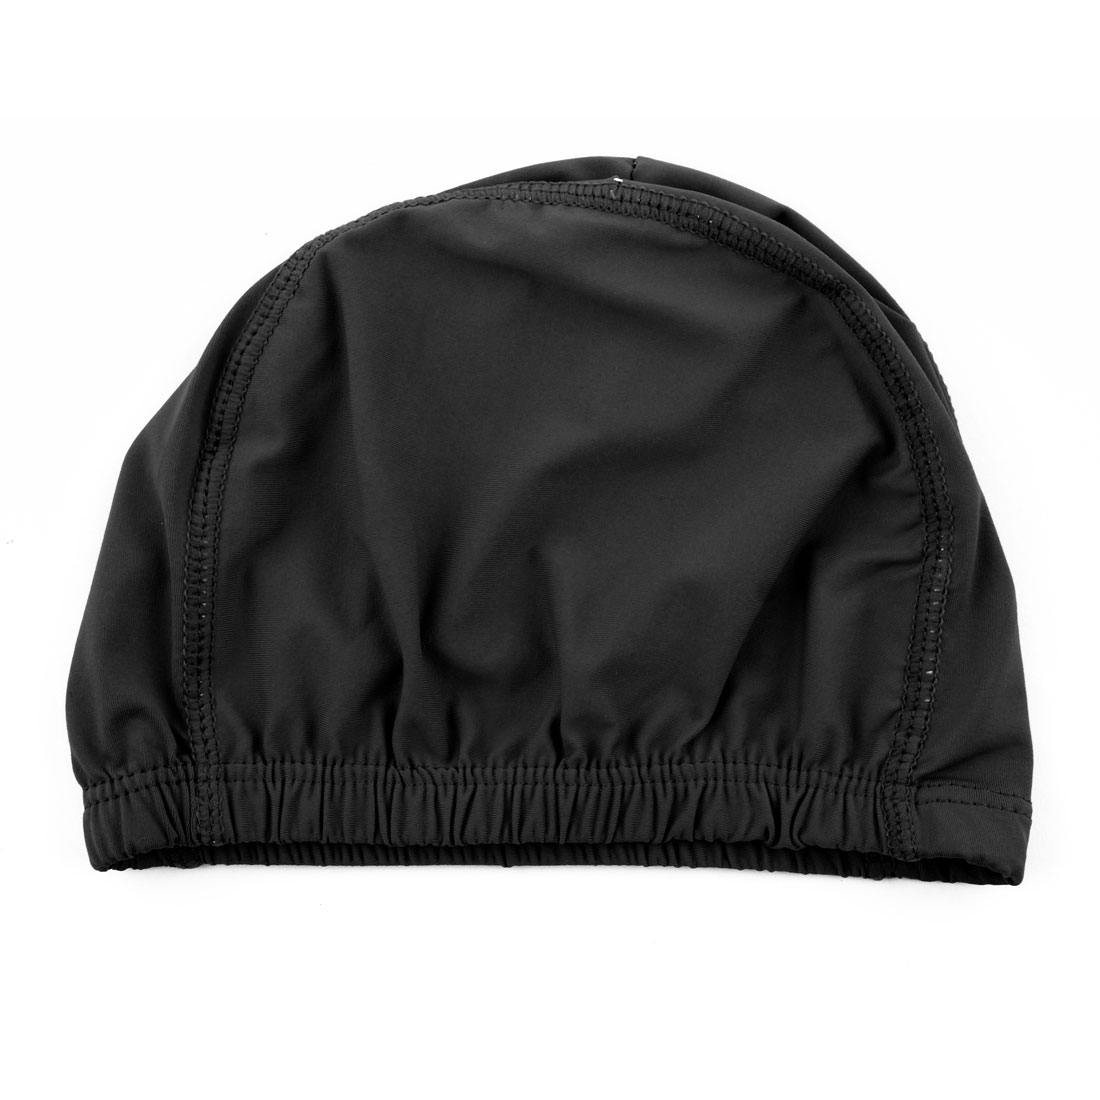 Unisex Polyester Dome Shaped Water Resistant Stretchable Swimming Cap Portable Bathing Hat Black